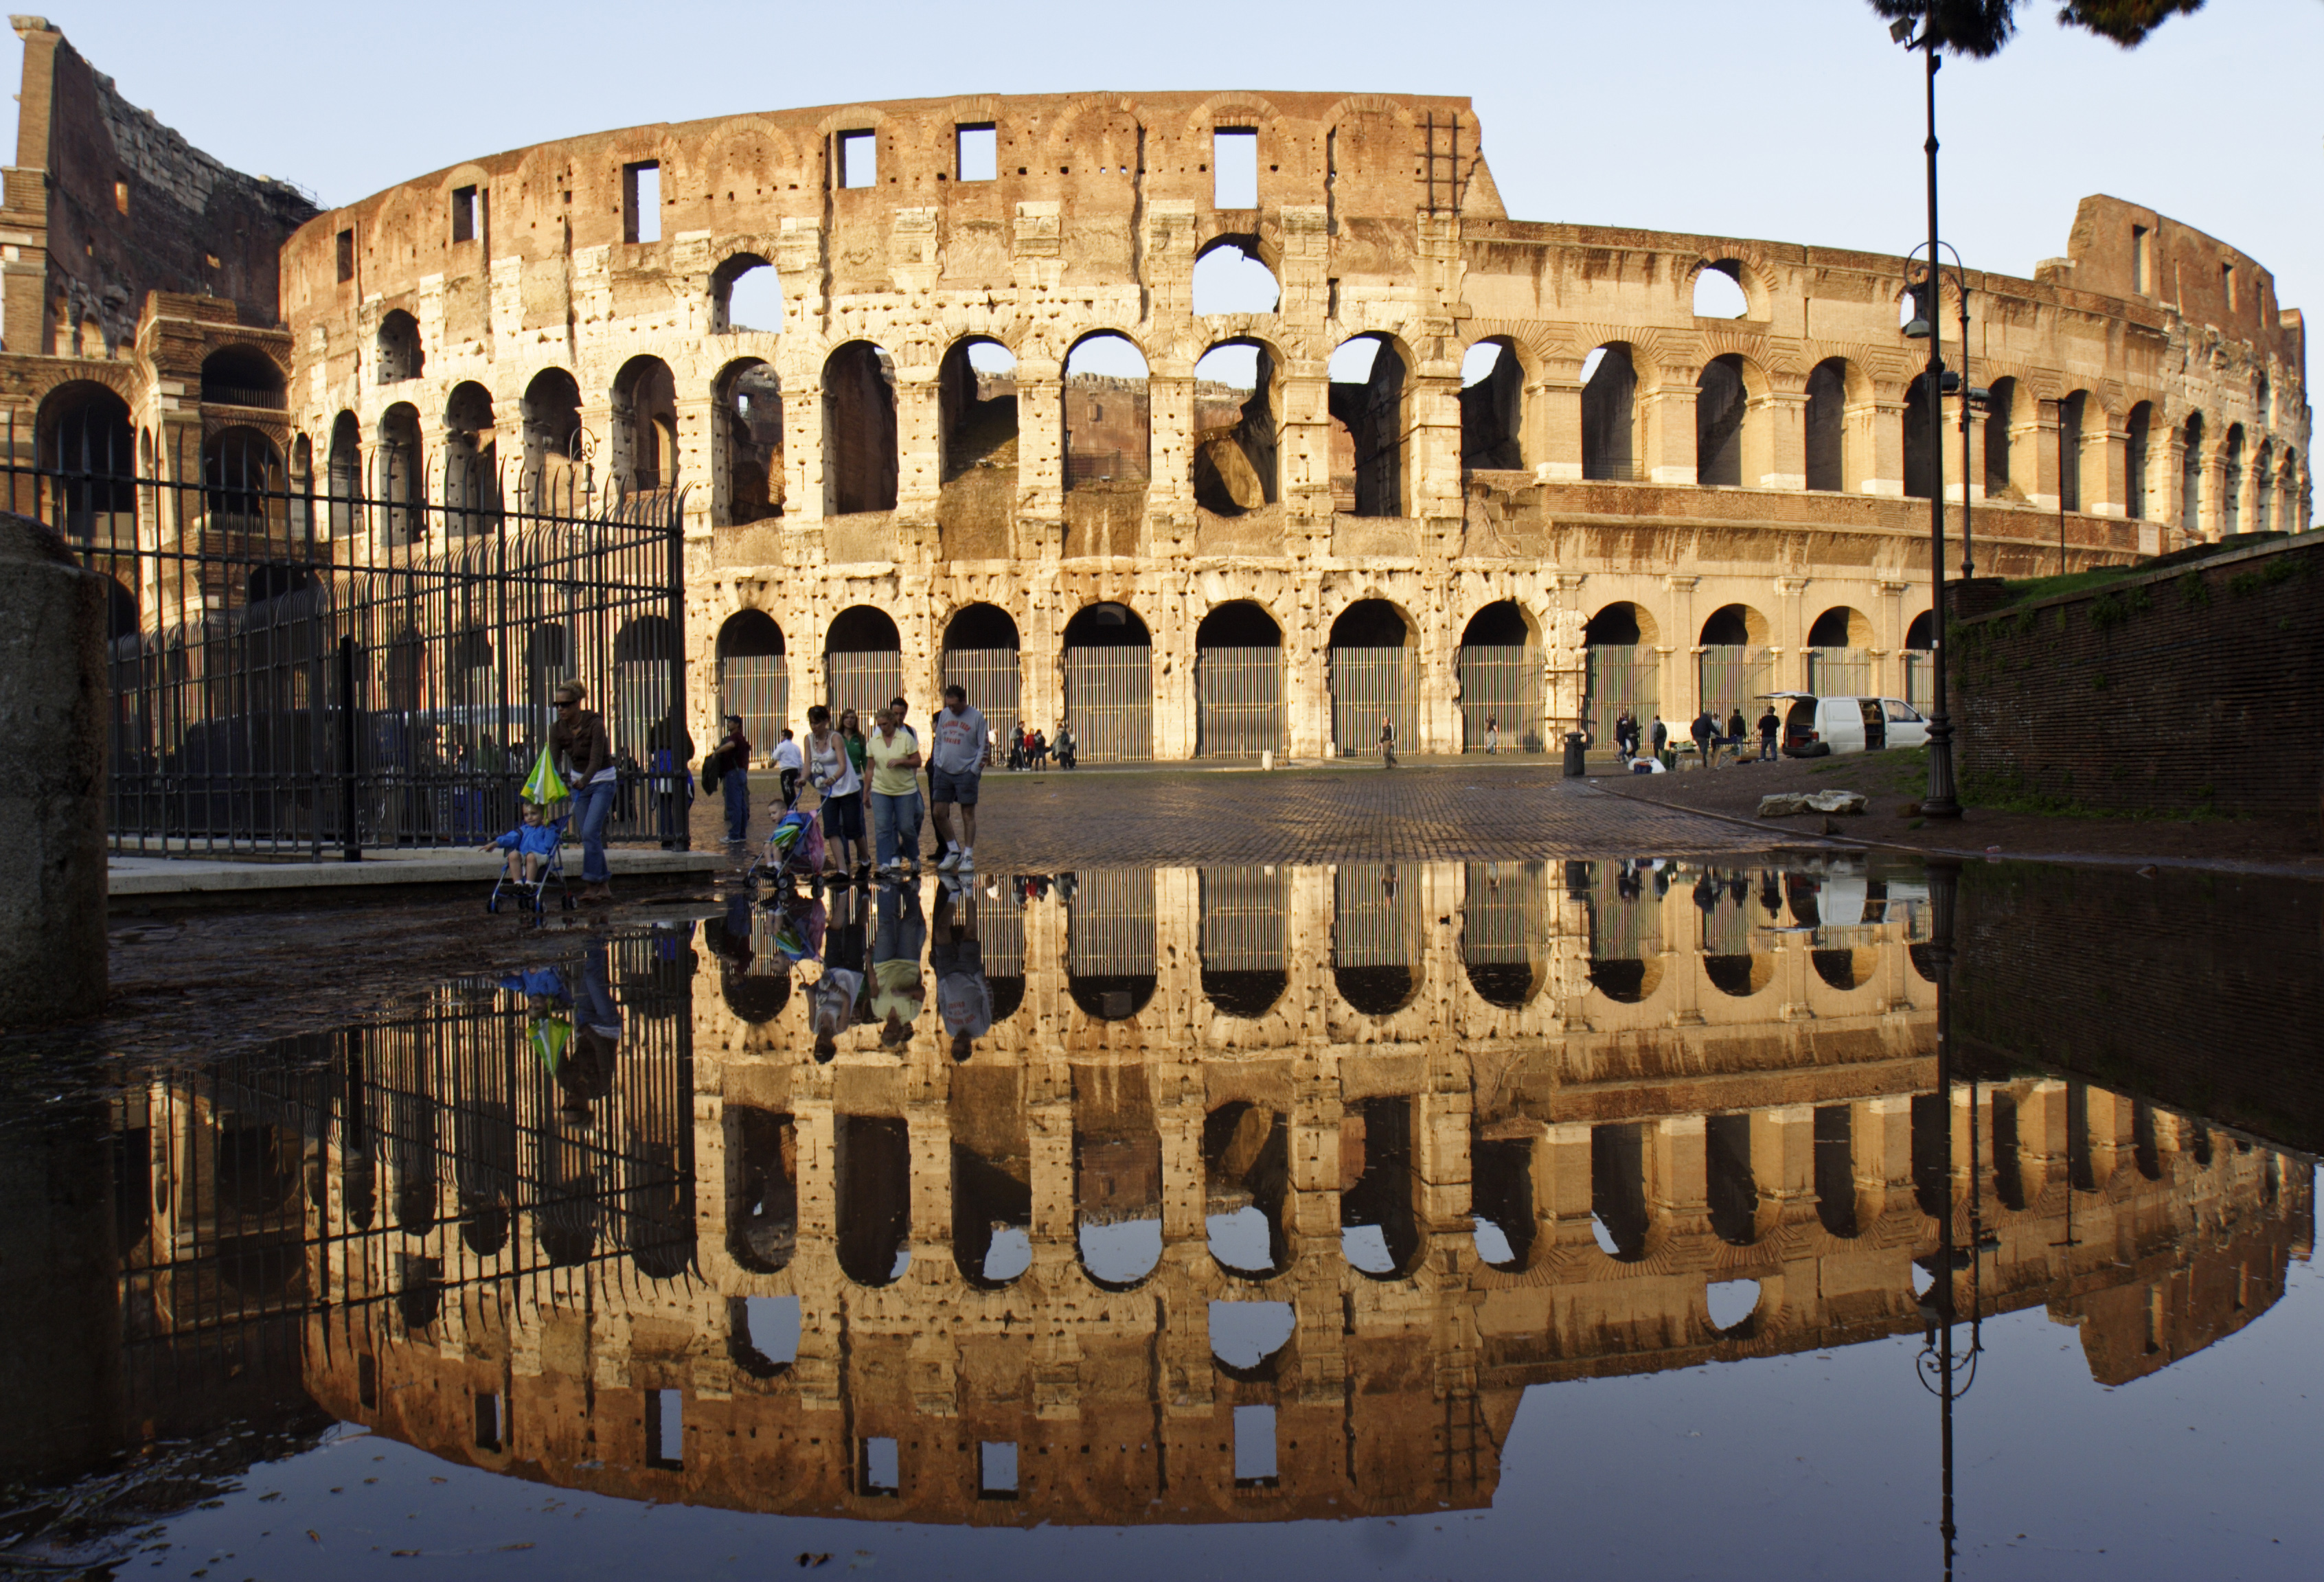 Impressions of Rome - Coloseum reflected after rain